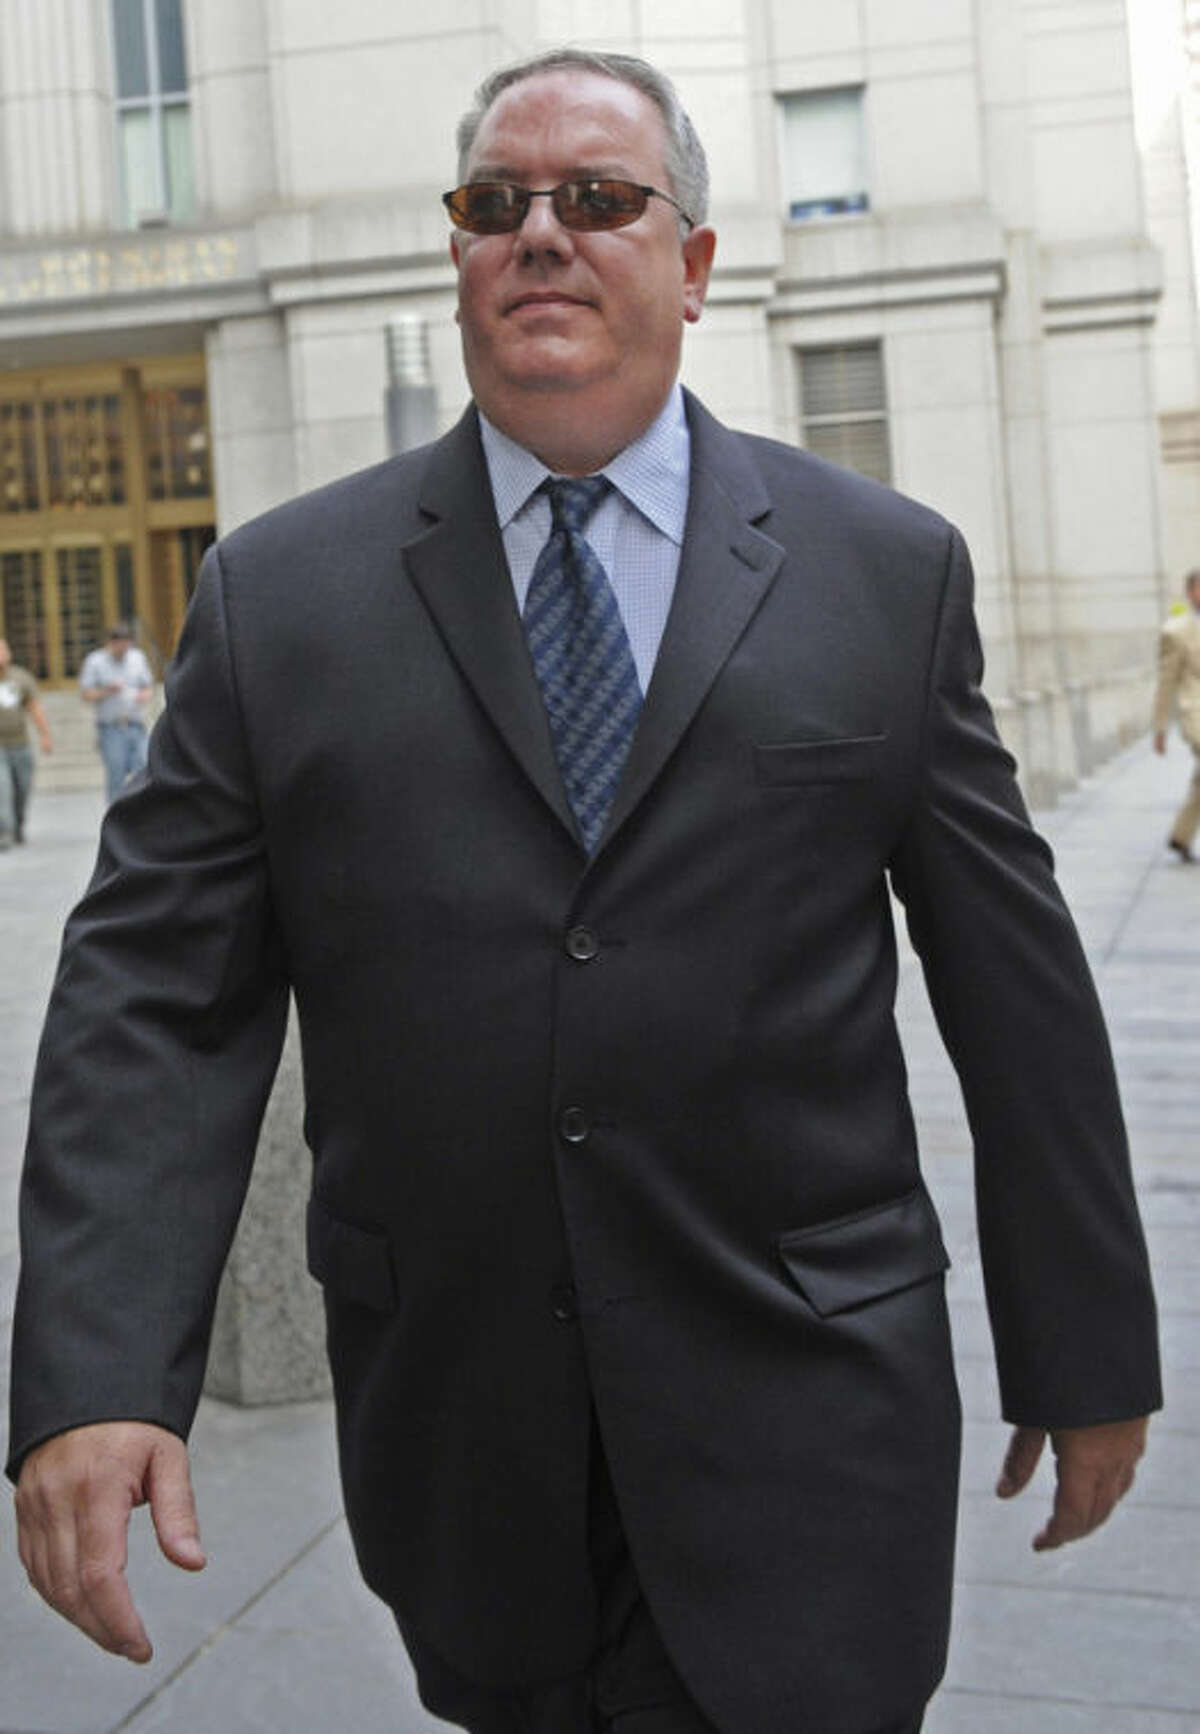 In this file photograph, Jerome O'Hara, former computer programmer for Bernard L. Madoff Investment Securities, leaves Manhattan federal court,Tuesday, June 21, 2011, in New York. O'Hara is accused of helping his former boss, Bernard Madoff, run a multibillion-dollar Ponzi scheme. (AP Photo/Louis Lanzano)